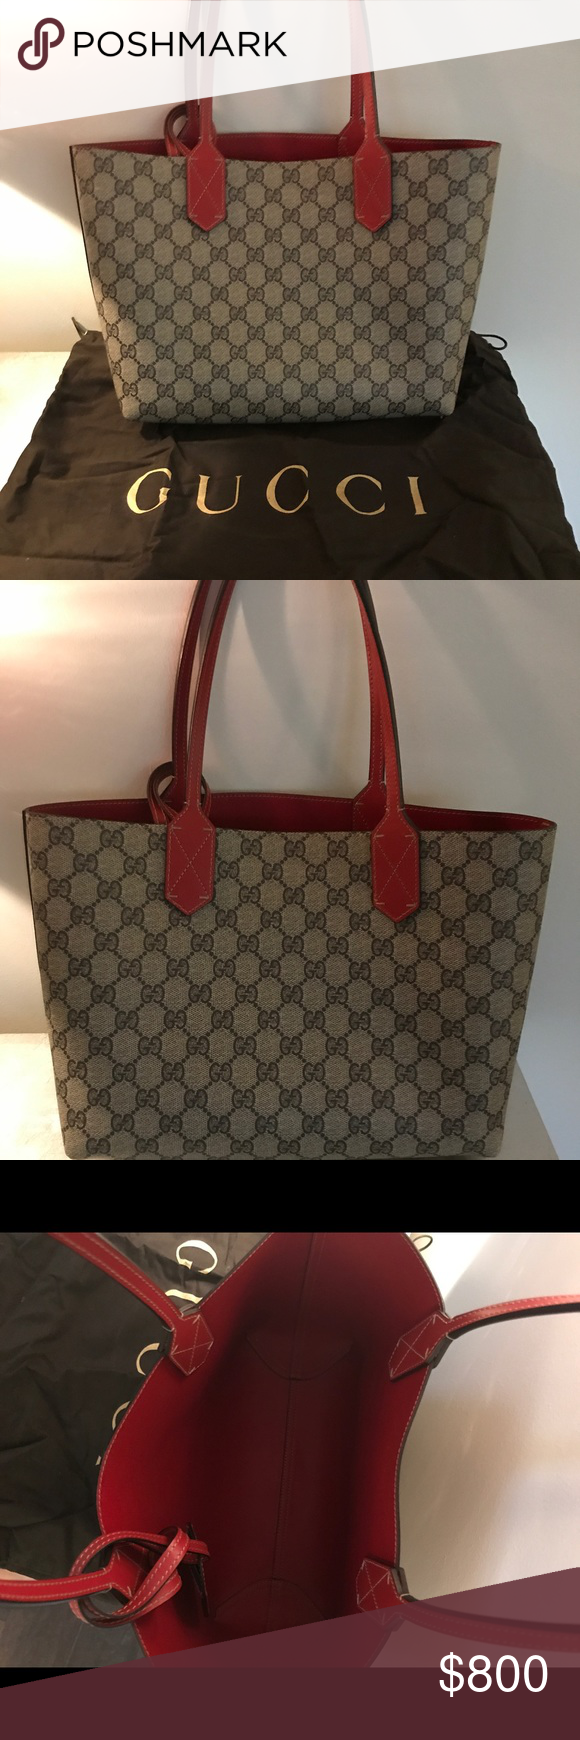 6792b6cdc97 Gucci Reversible Red Leather   Gg Canvas Tote Bag New without tags ...